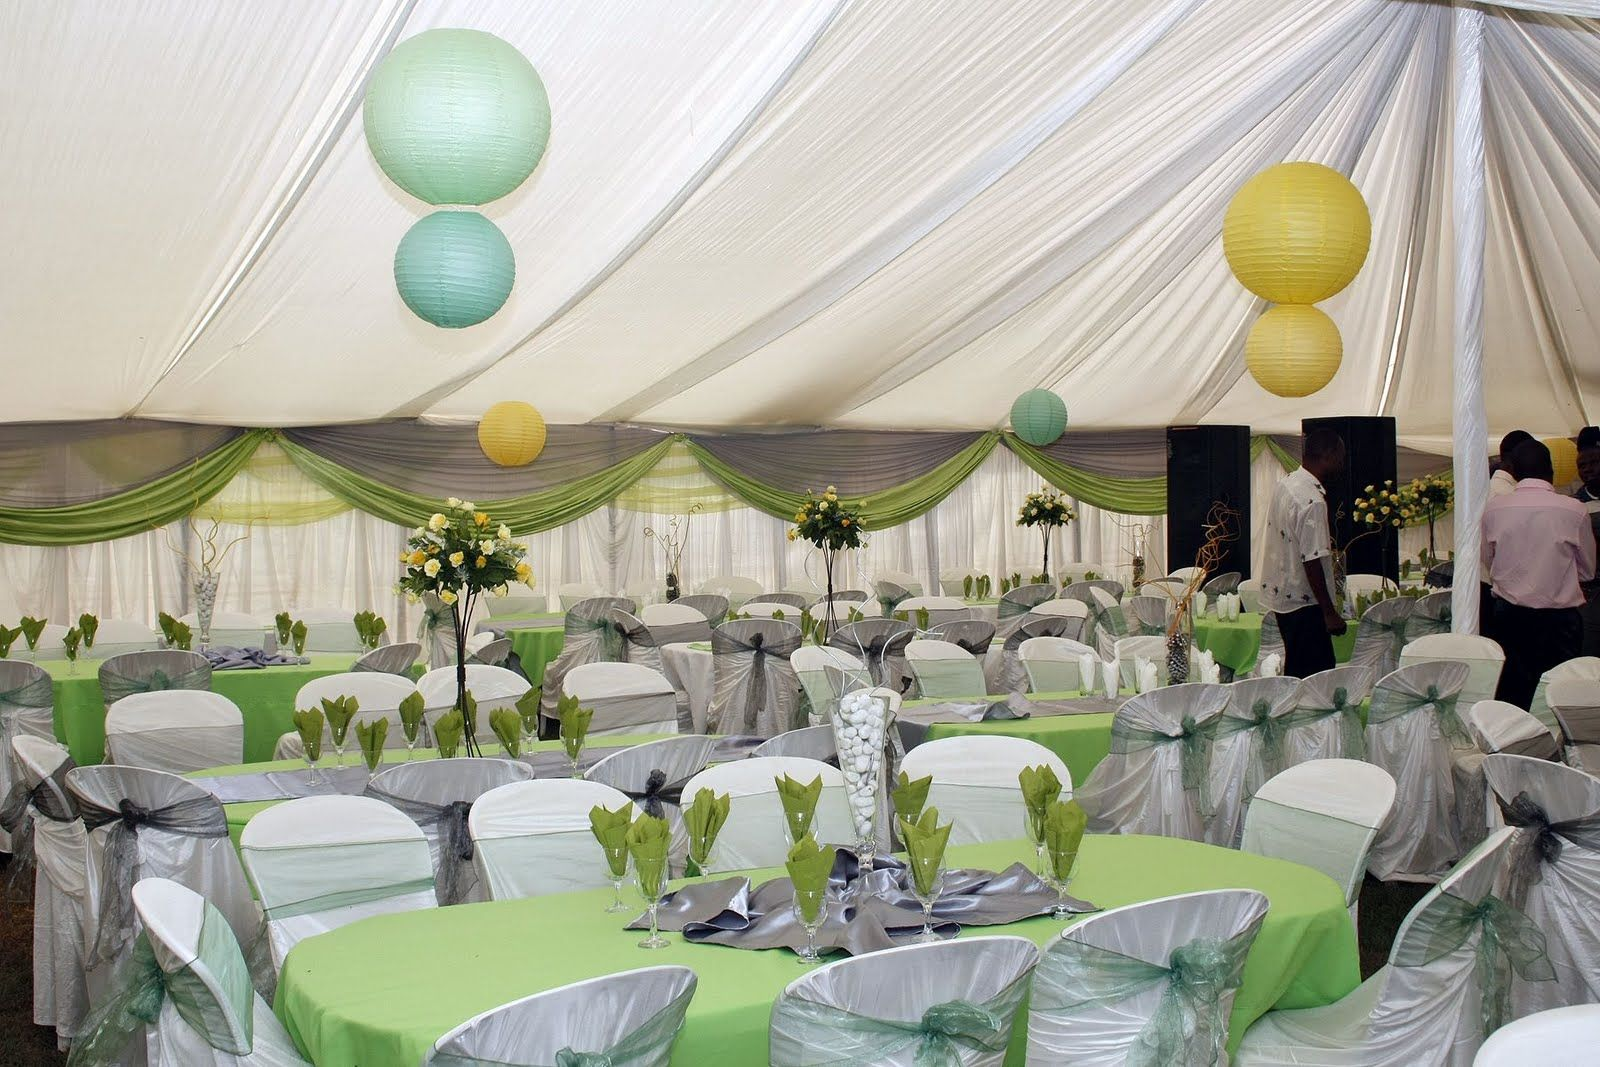 garden wedding reception decoration ideas How To Make Simple Wedding Decorations   Simple Modern Walk In pictures